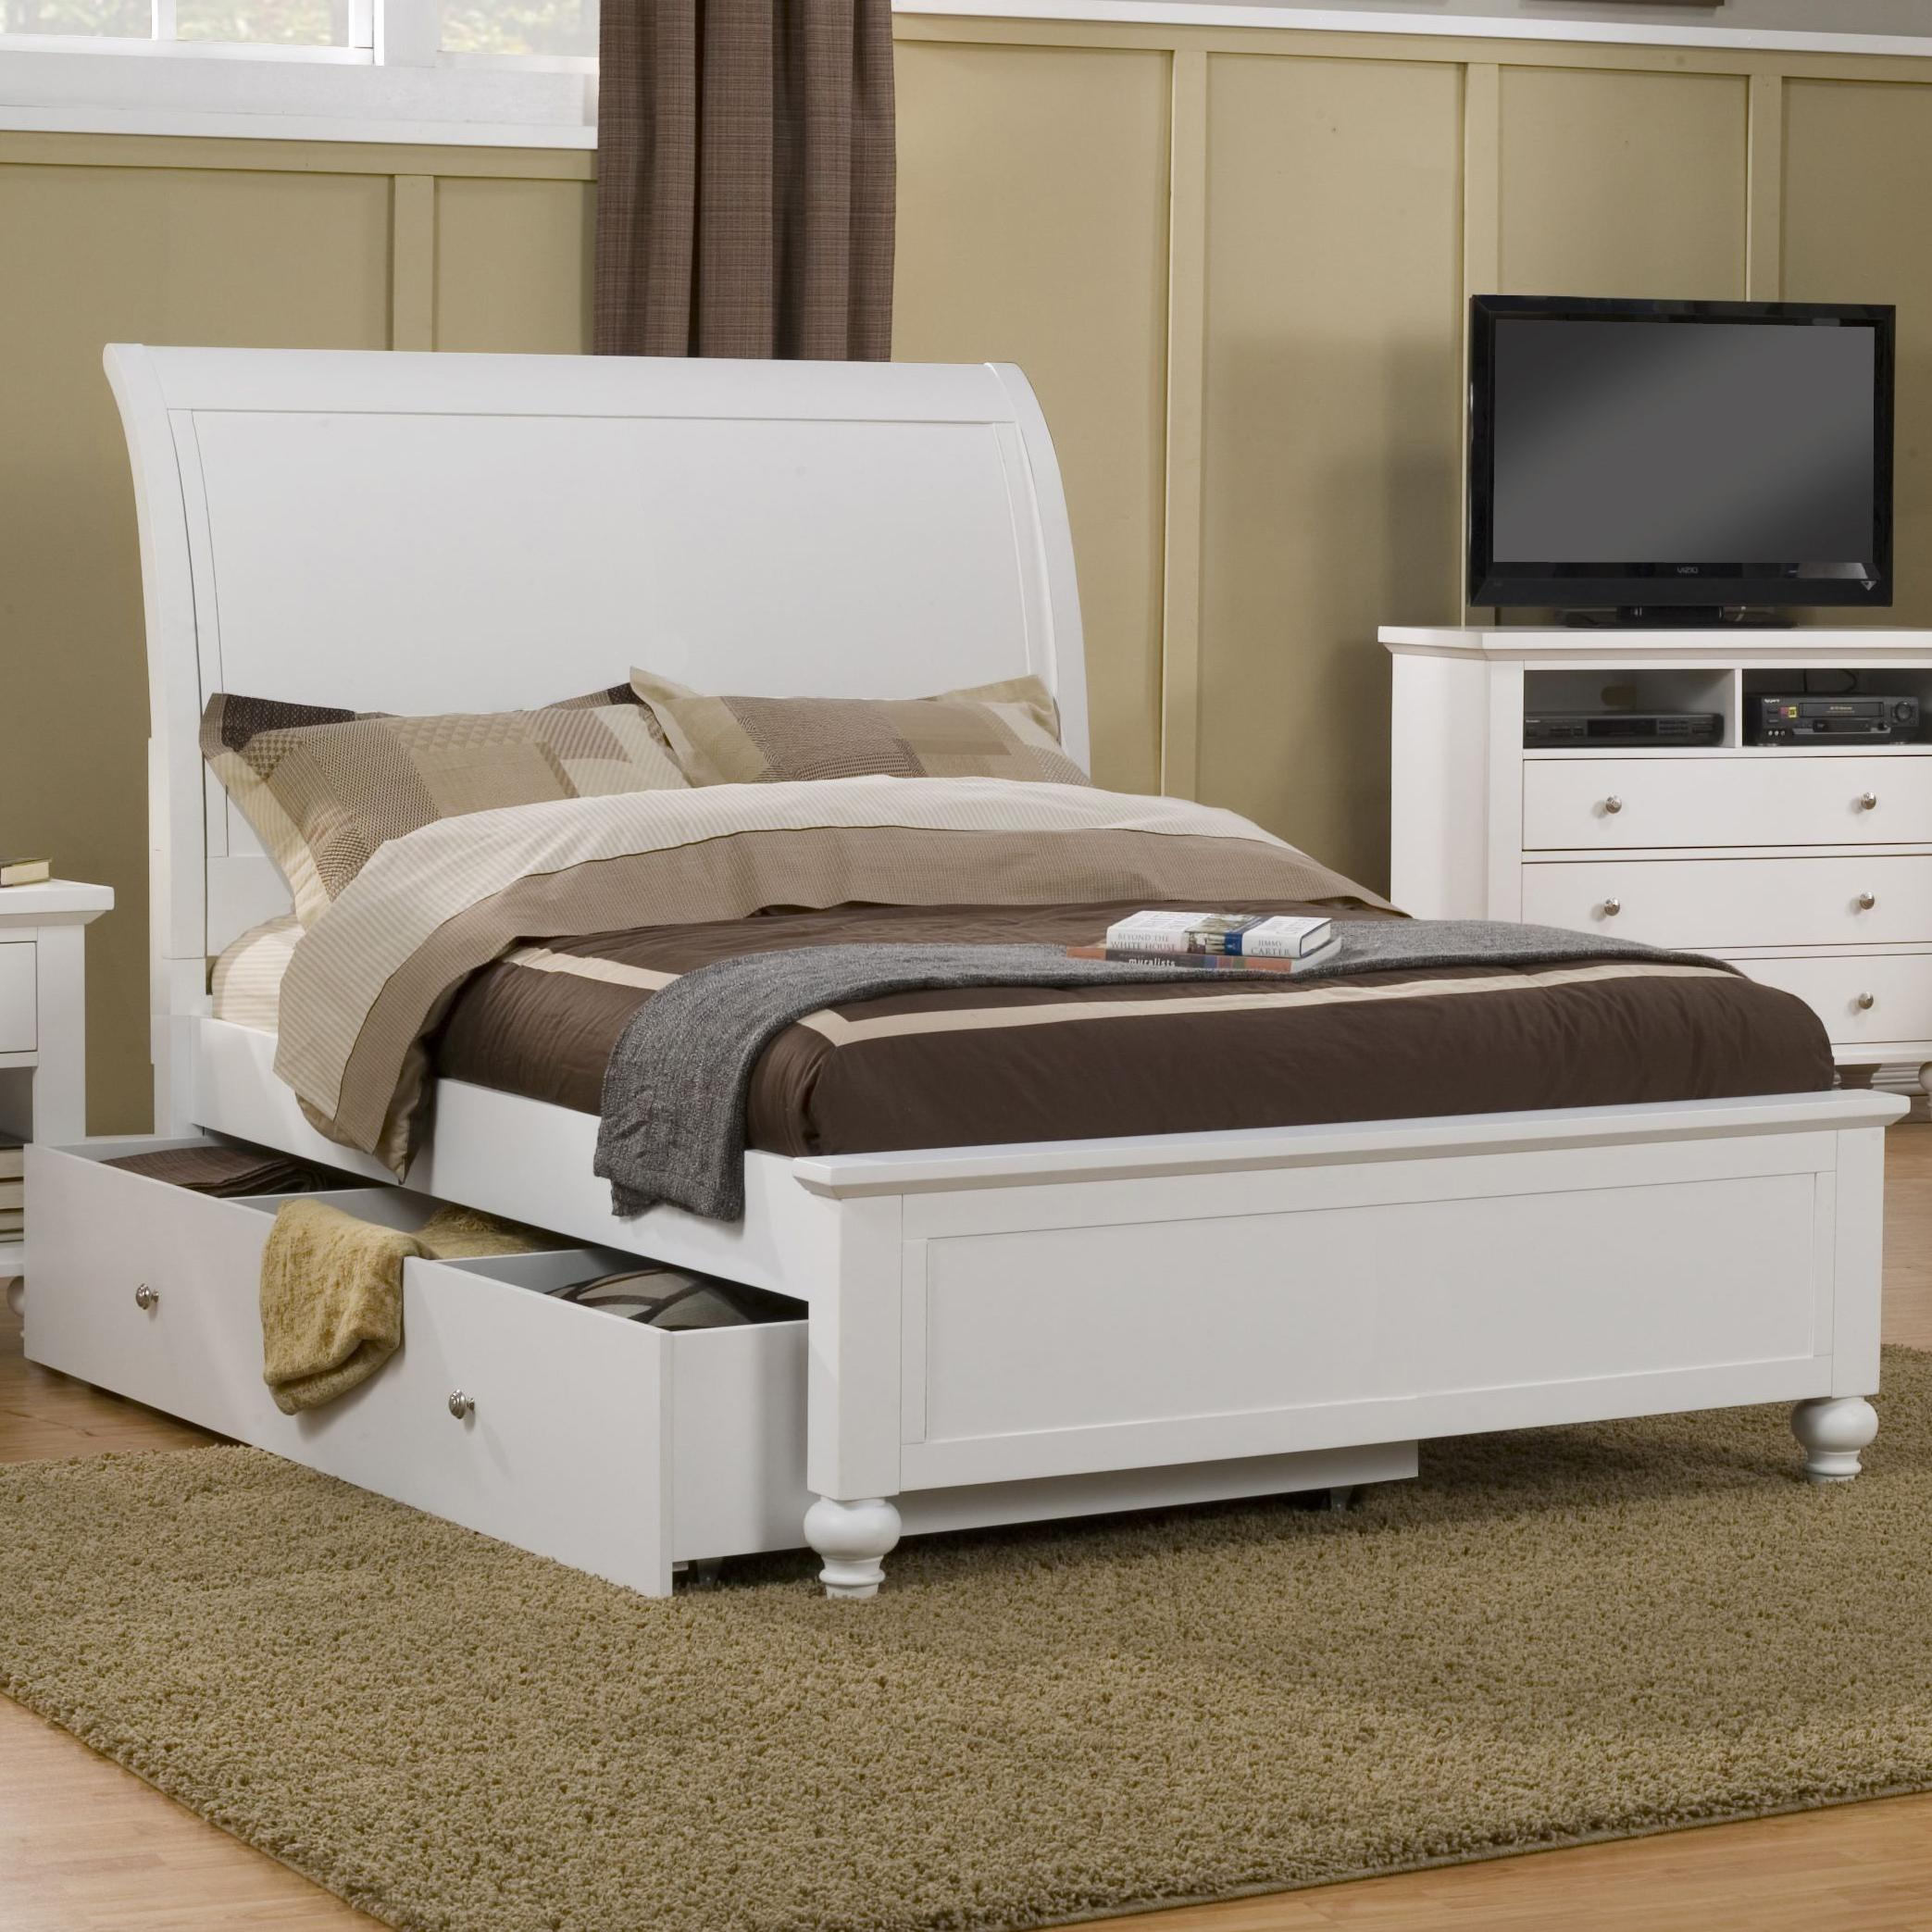 products with bch width bed threshold b size storage twin icb height trim aspenhome sleigh drawers cambridgetwin item cambridge